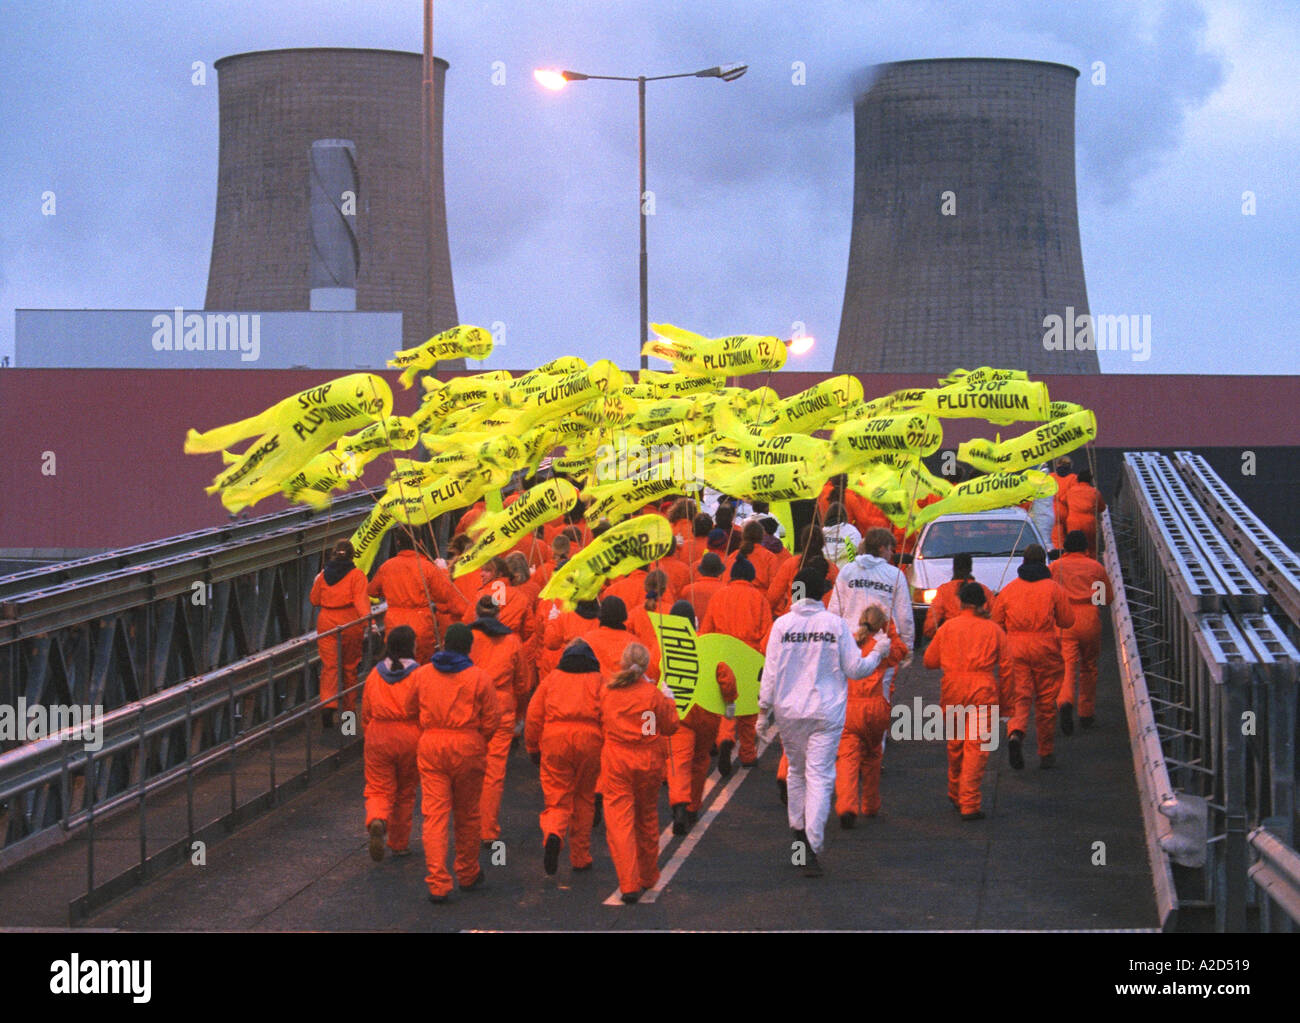 250 Greenpeace activists entered Sellafield nuclear reprocessing plant - Stock Image